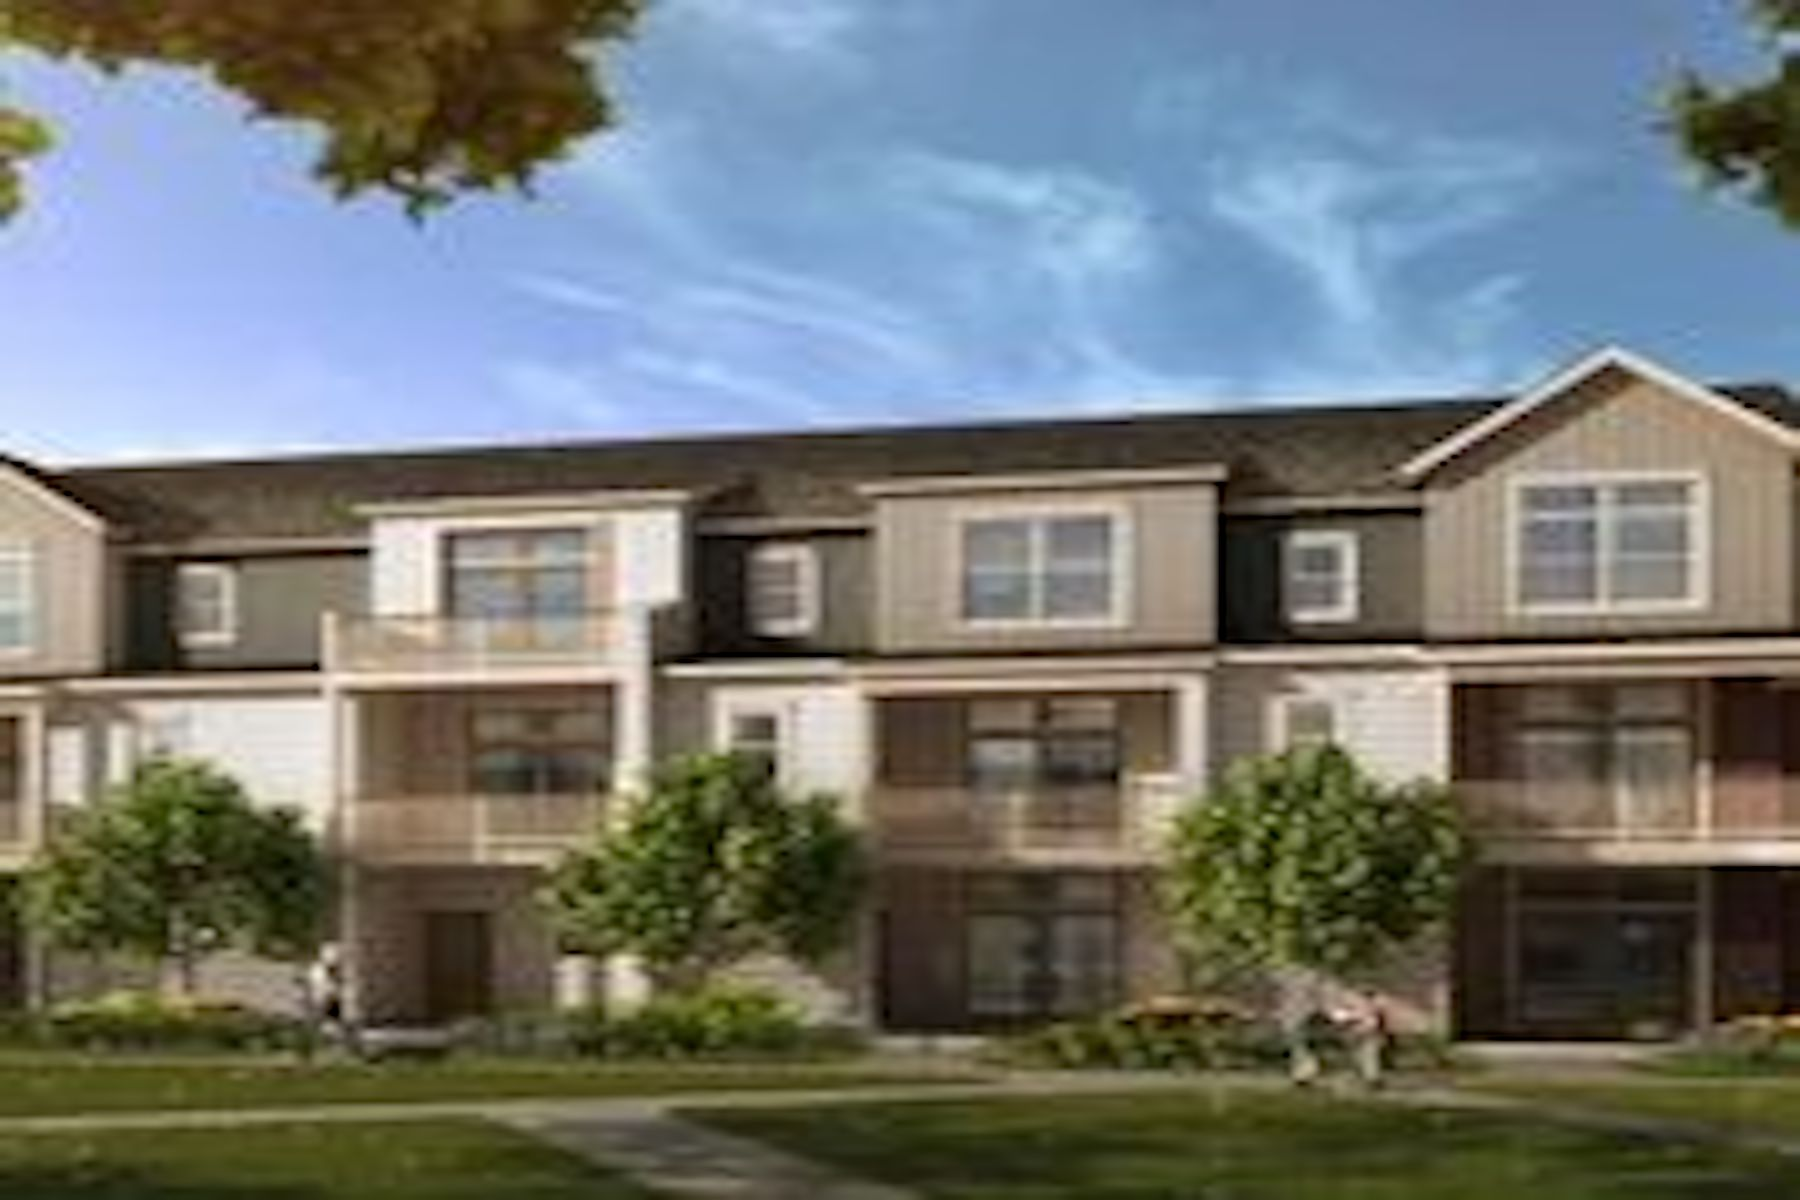 Townhouse for Active at Brand New Spacious 4 Bed, 3 Bath Townhouse 536 West Amherst Avenue # Primrose- end Bldg. 10 Englewood, Colorado 80110 United States